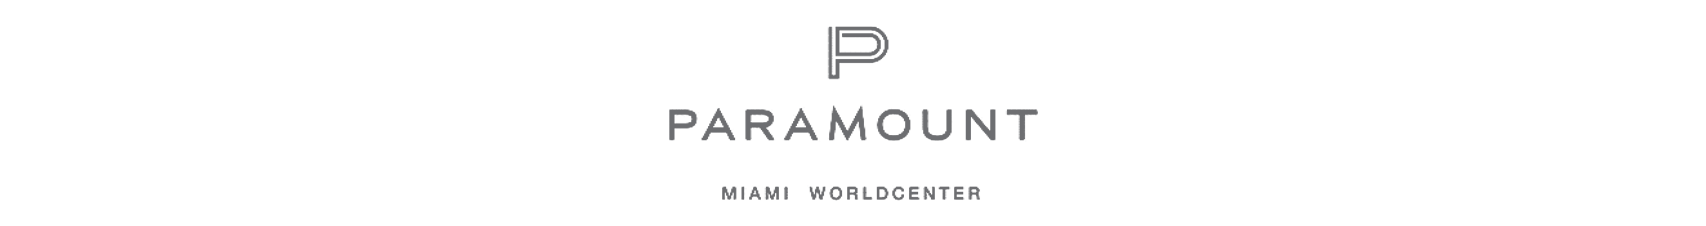 paramountworldcentre.png